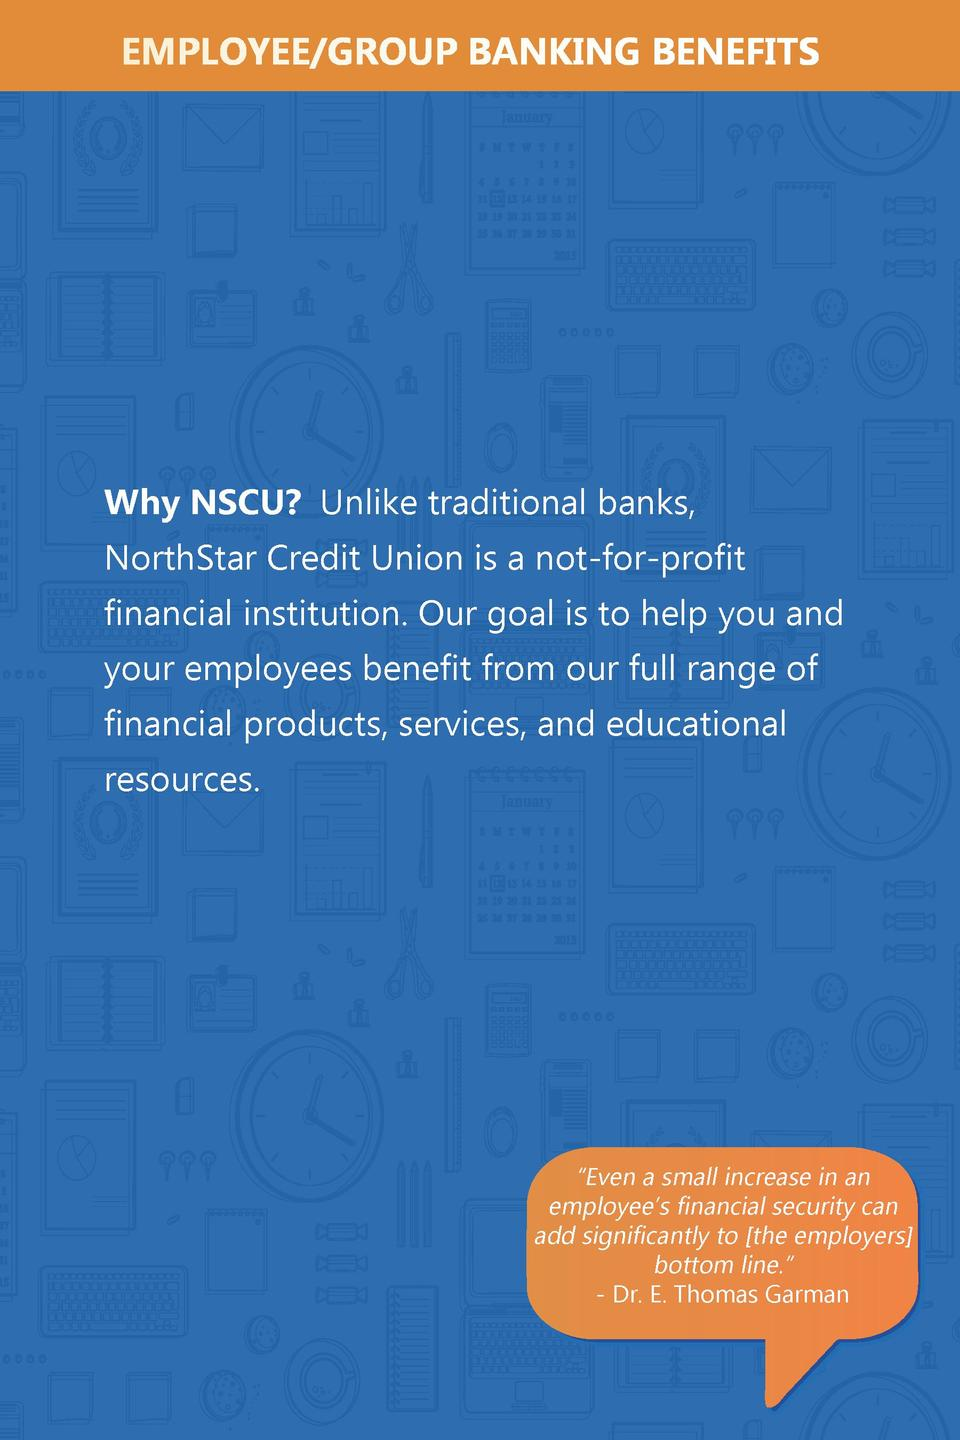 EMPLOYEE GROUP BANKING BENEFITS  Why NSCU  Unlike traditional banks, NorthStar Credit Union is a not-for-profit financial ...